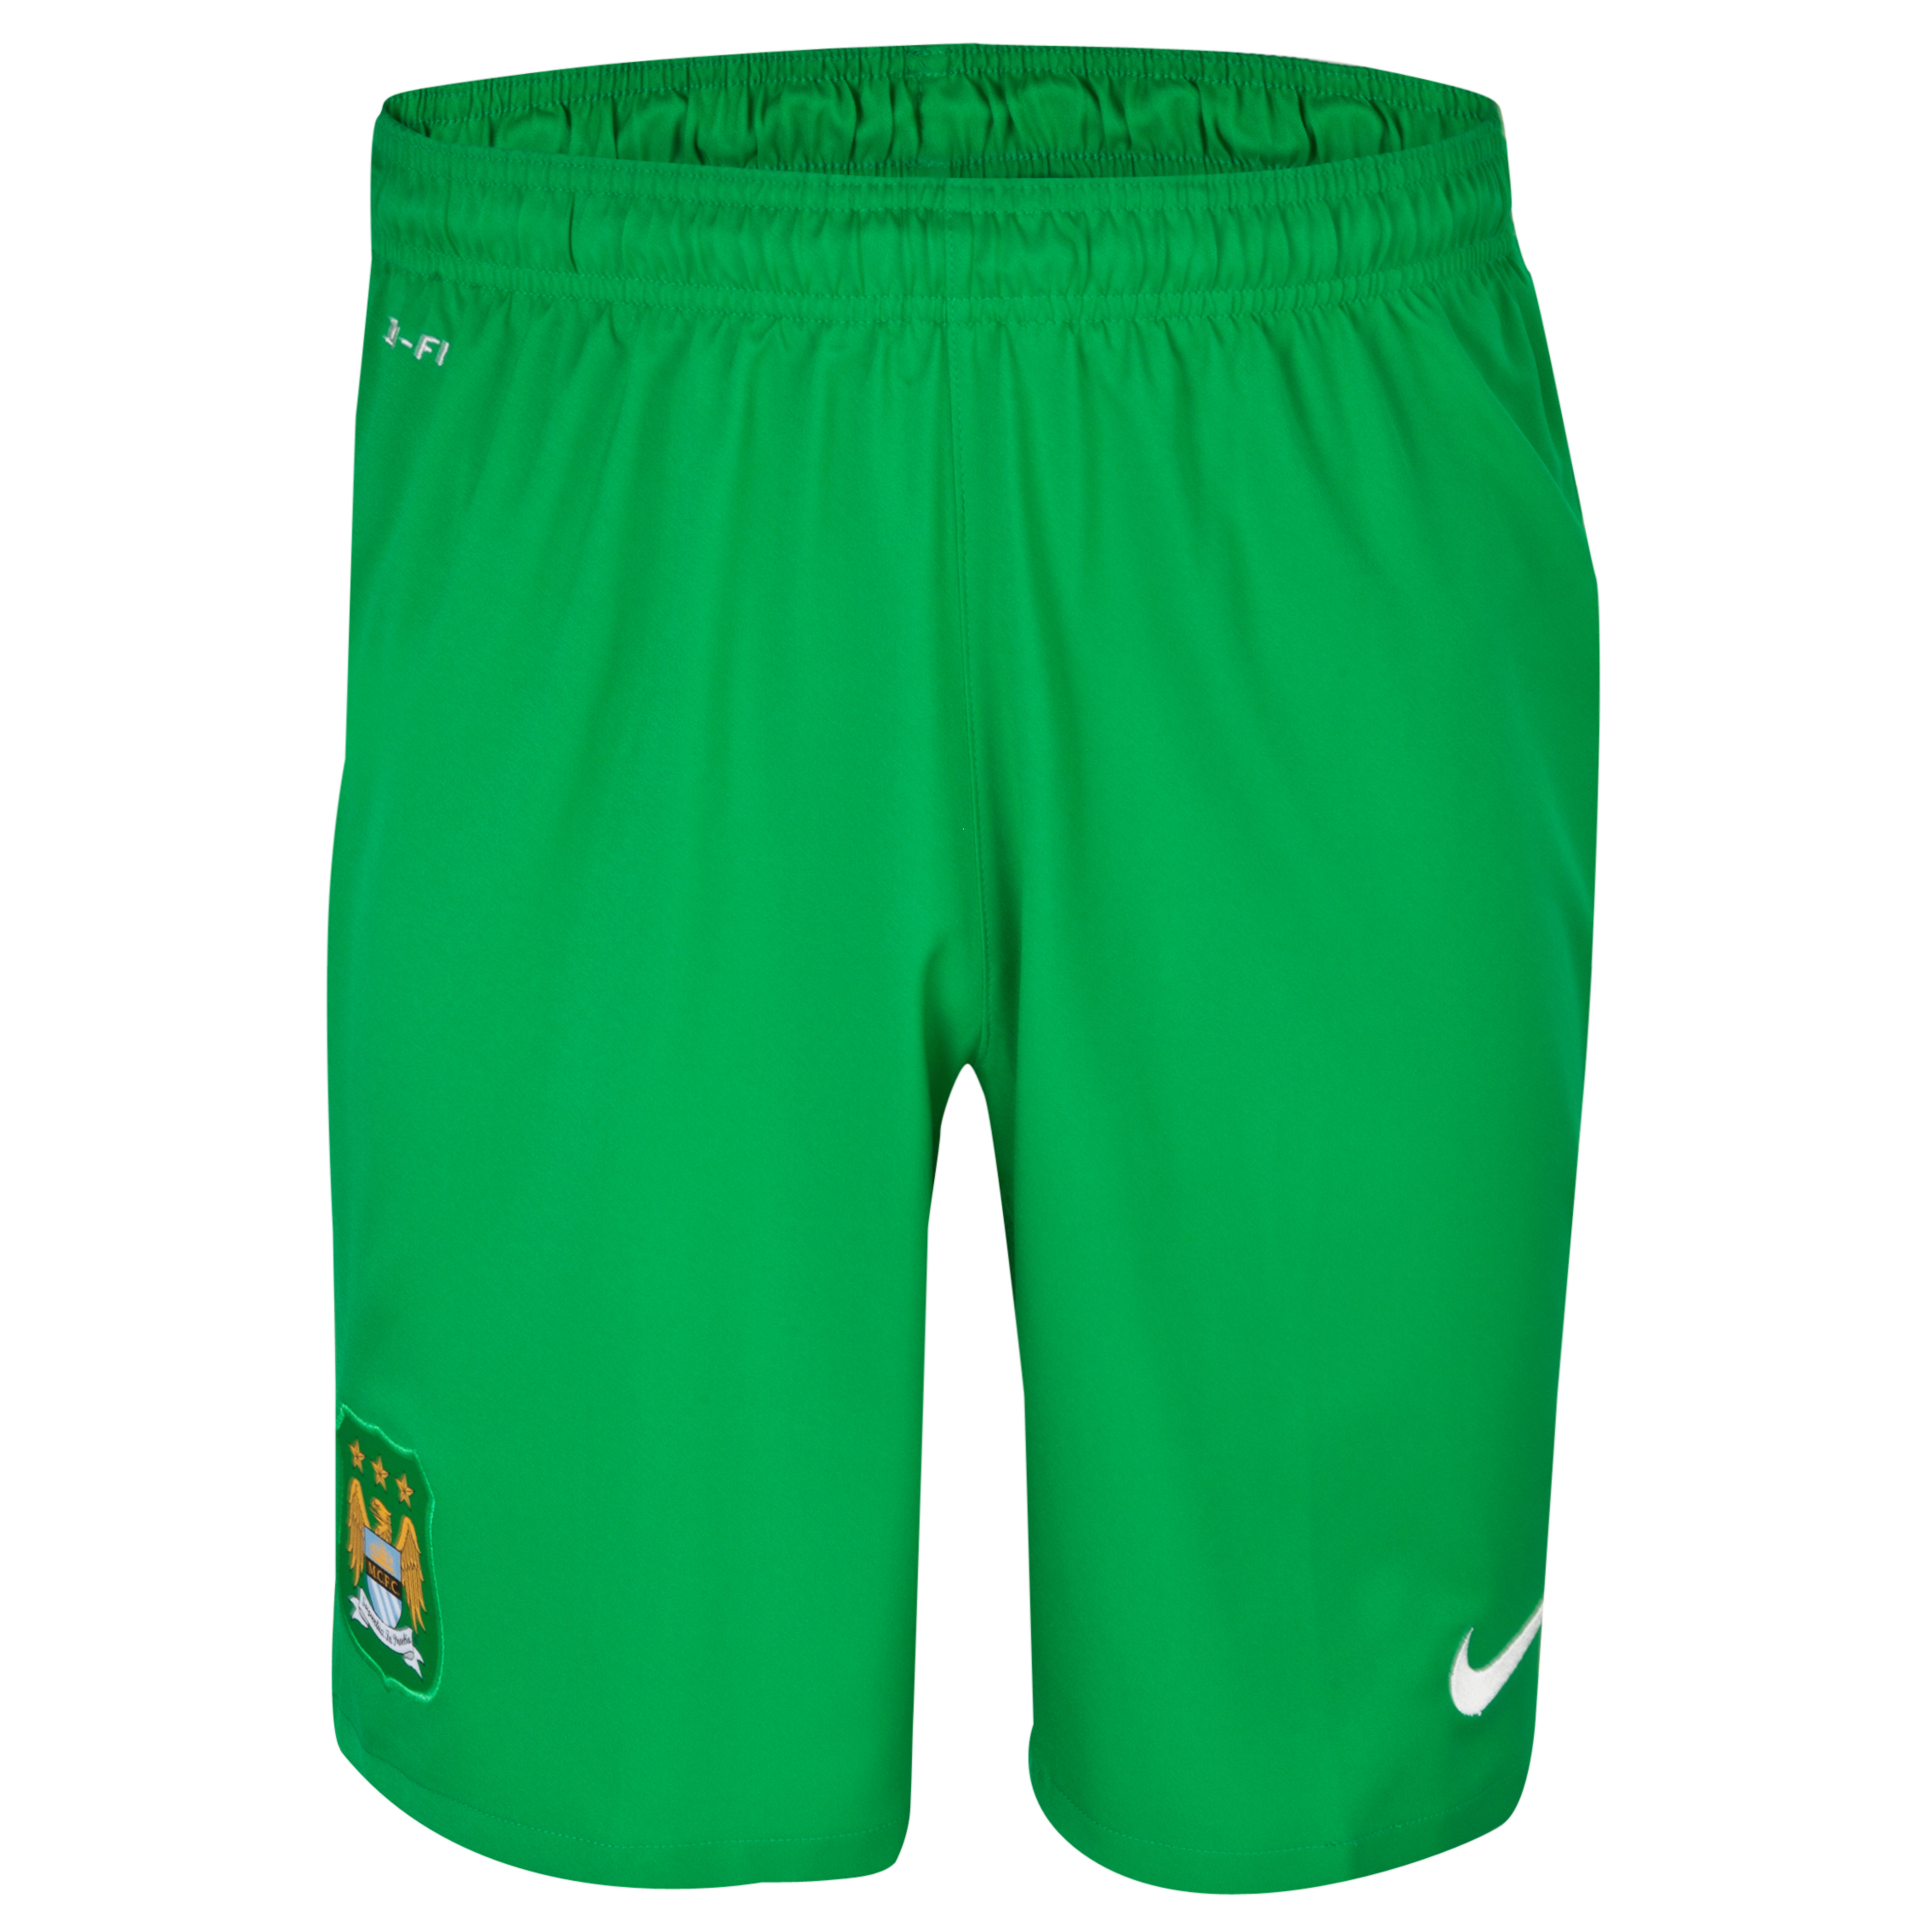 Manchester City Option 1 Goalkeeper Short 2013/14 - Green